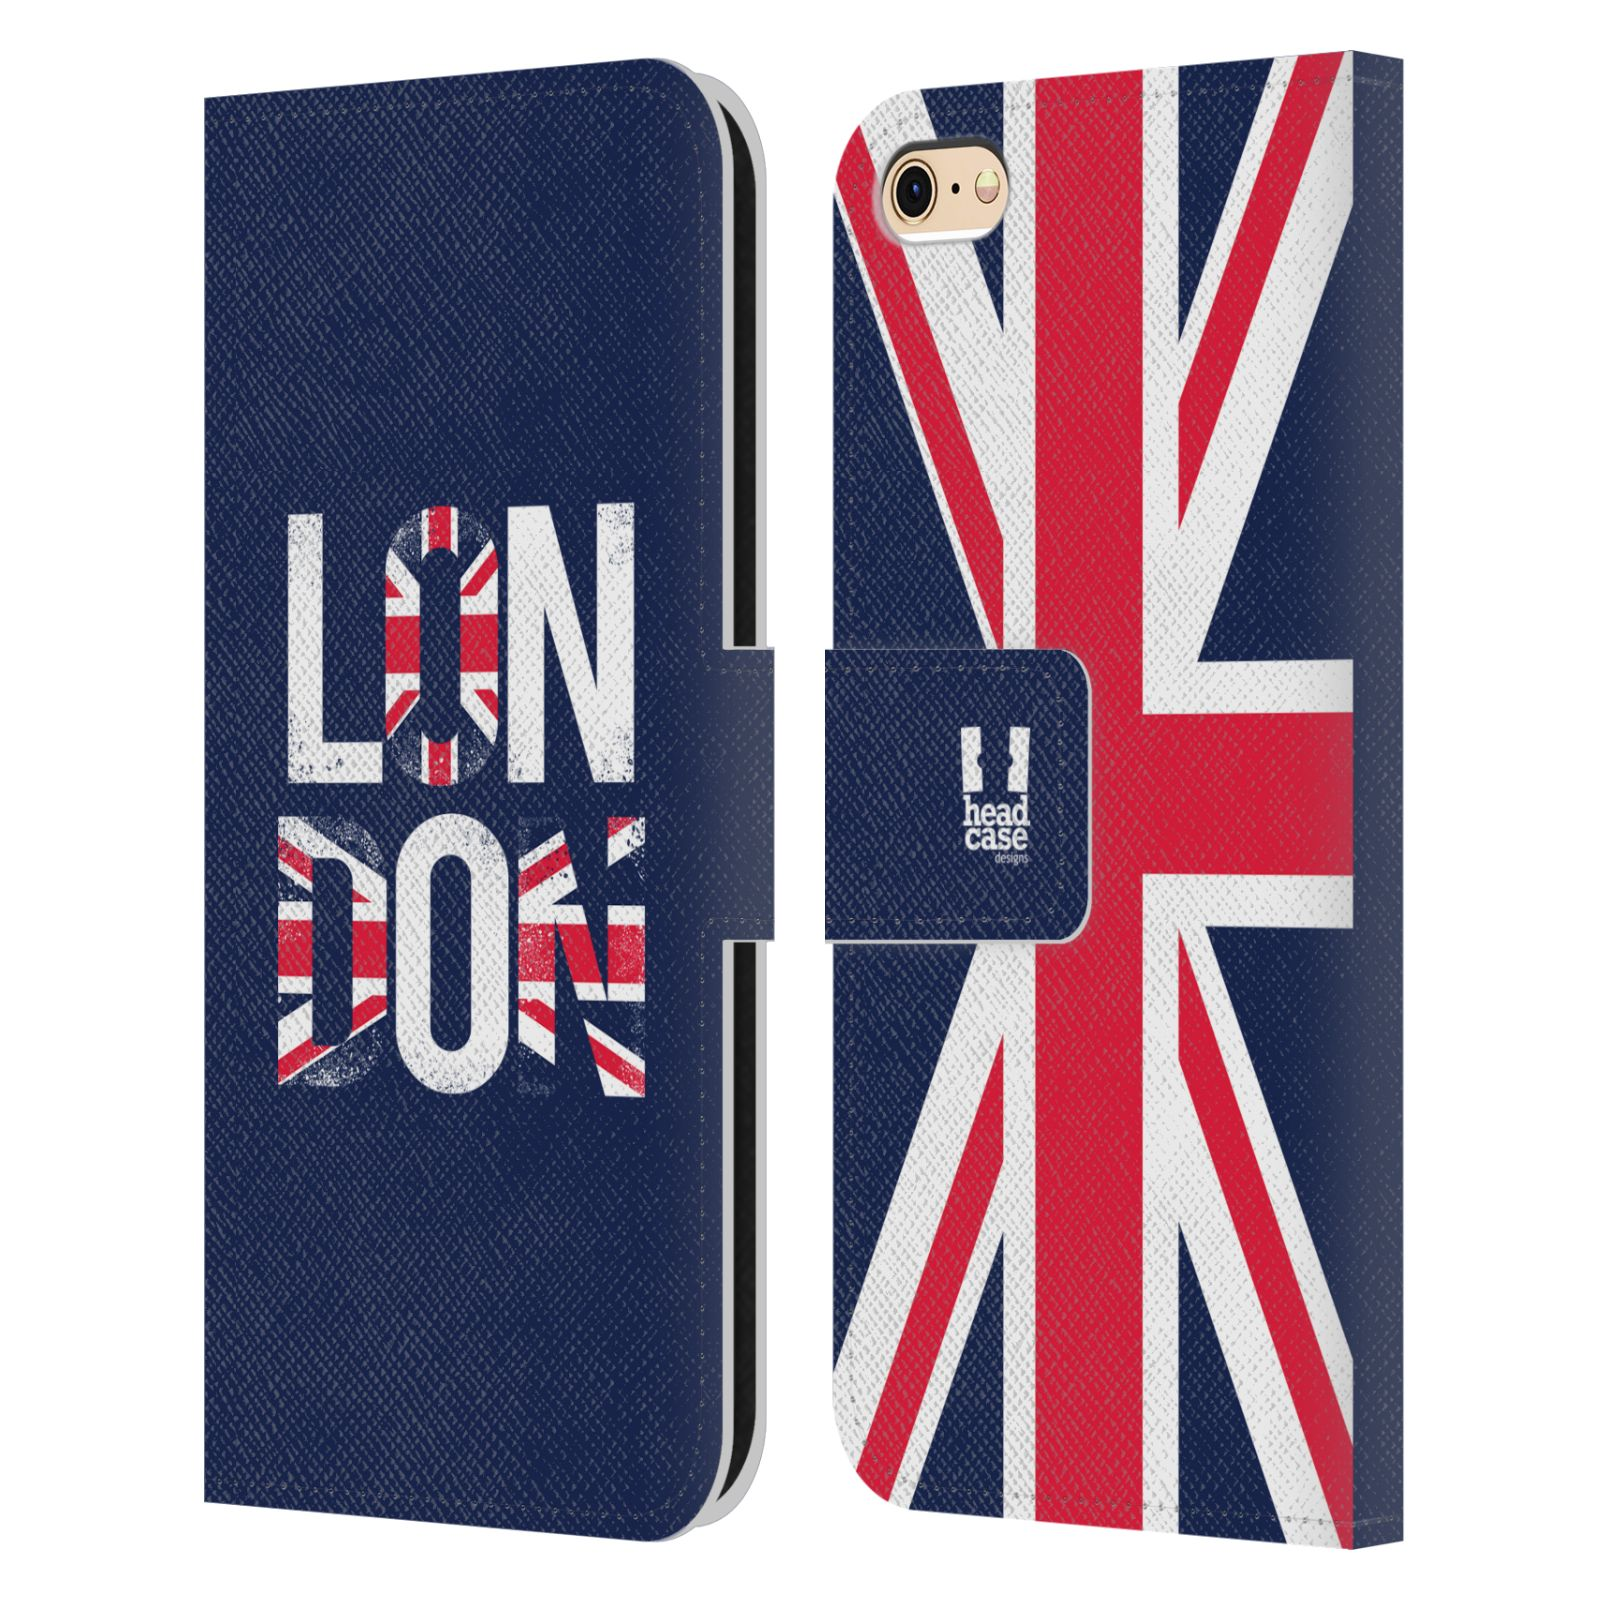 Best Book Cover For Iphone : Head case designs london best leather book wallet for